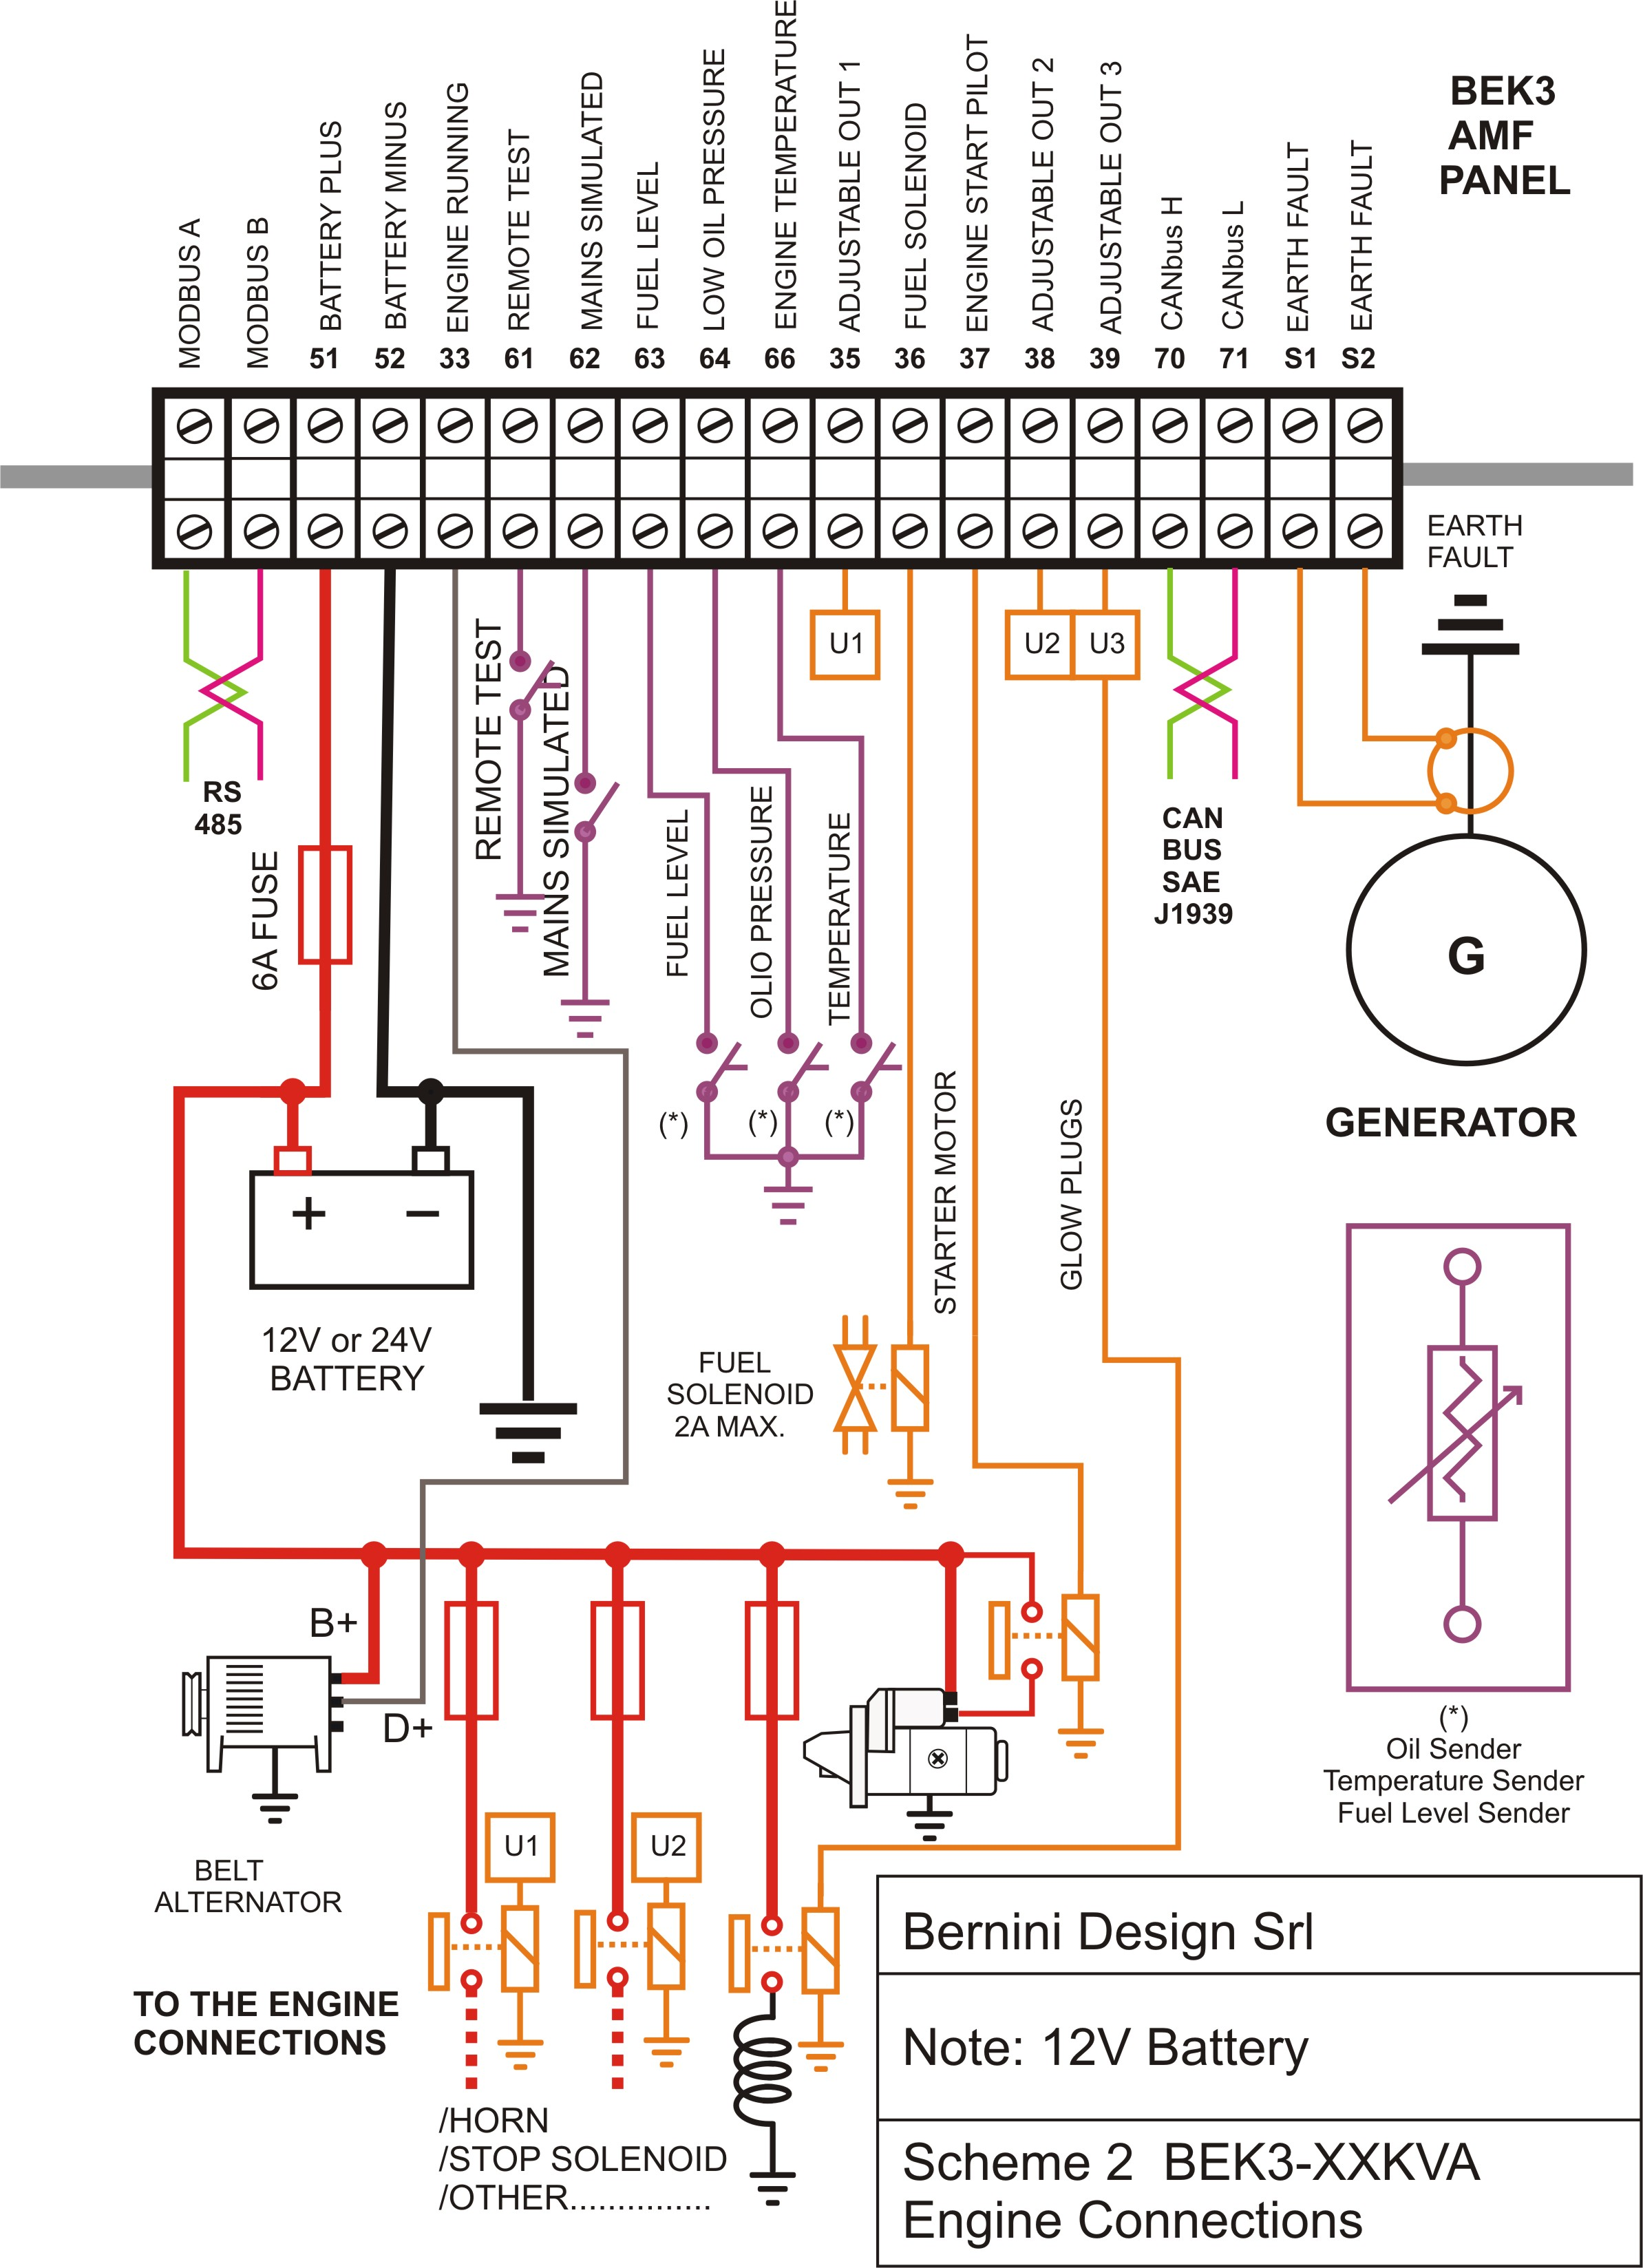 Diesel Generator Control Panel Wiring Diagram Engine Connections wiring diagrams maker readingrat net wiring diagram freeware at gsmx.co